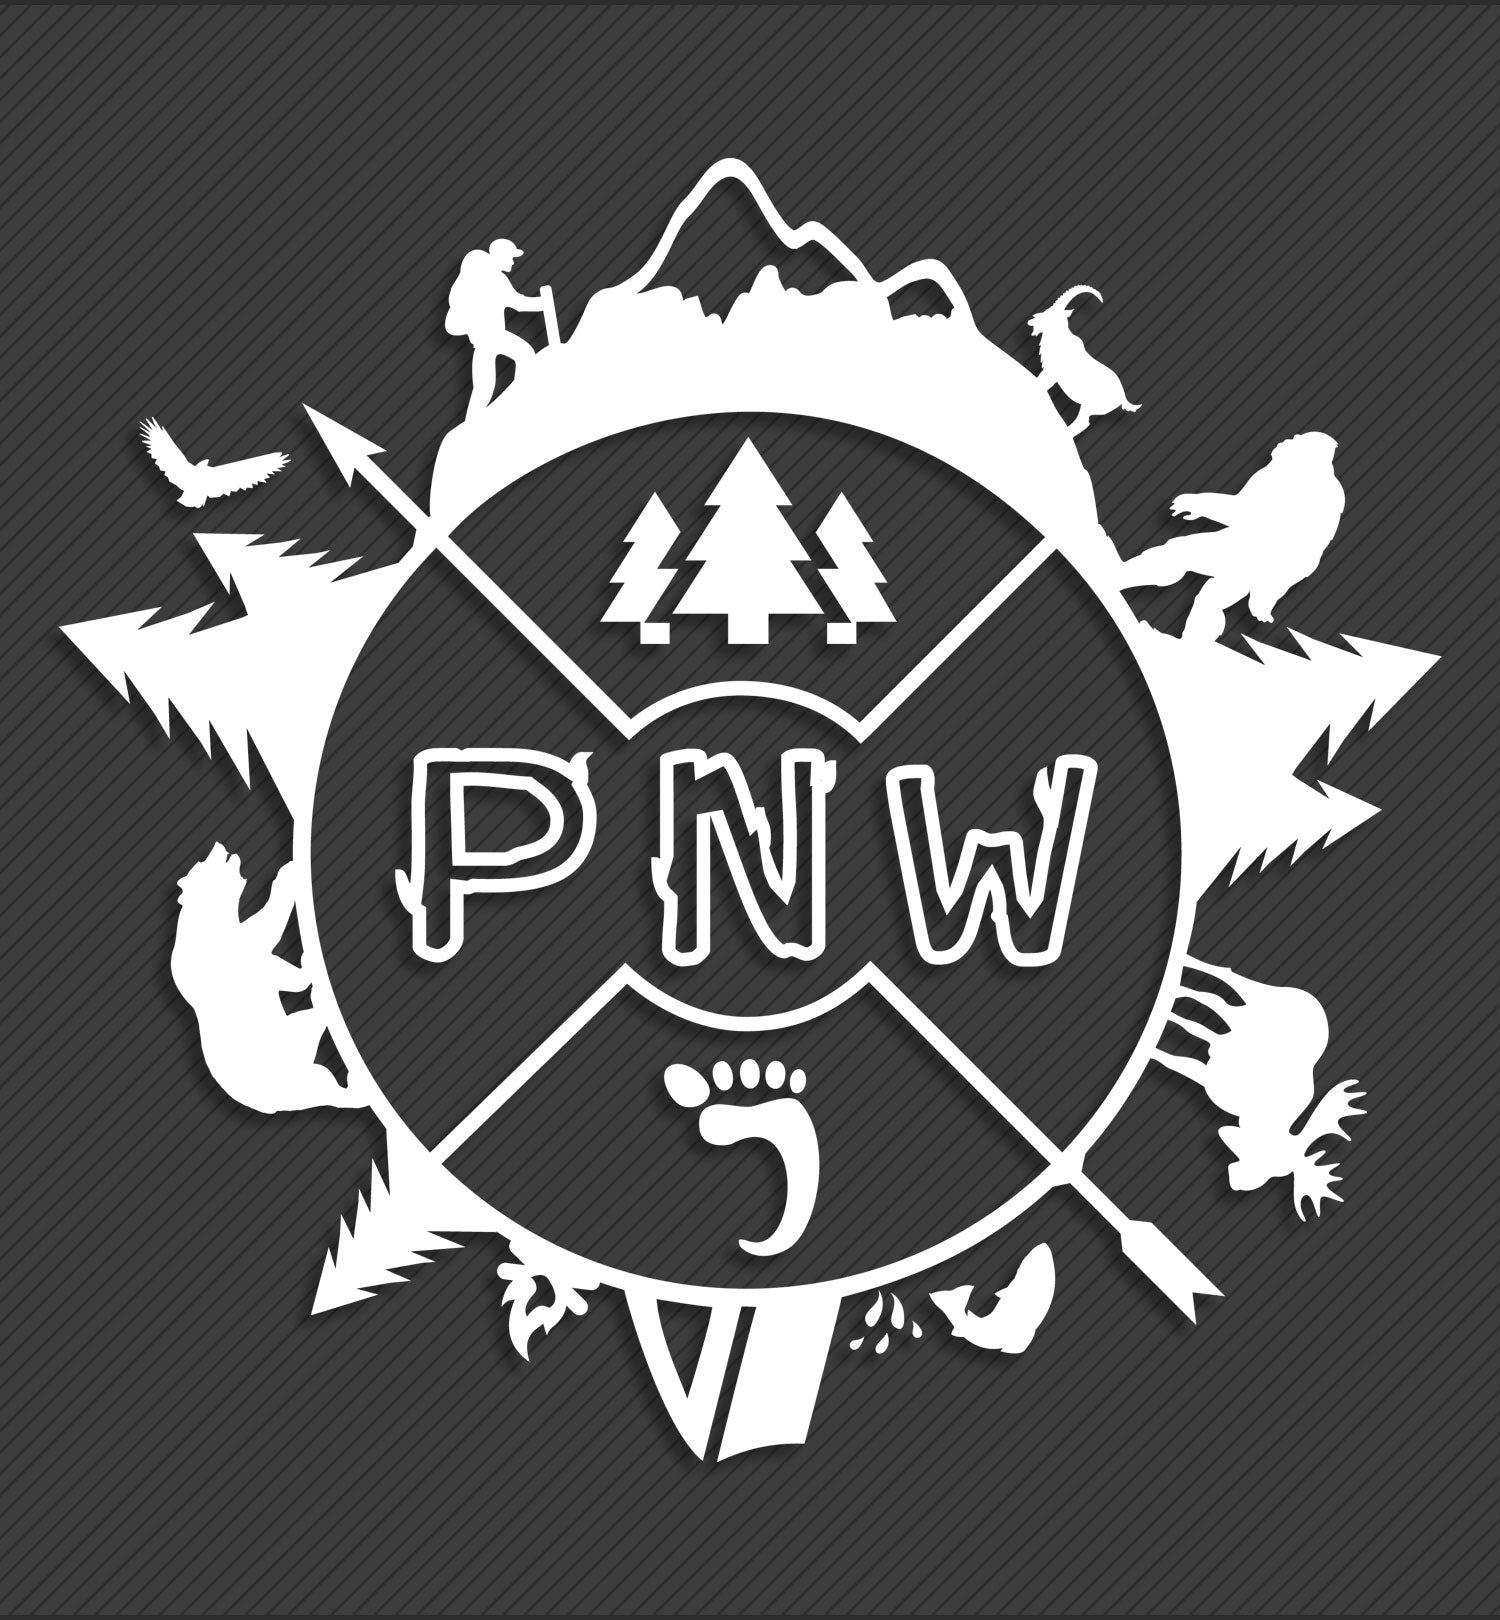 Around the PNW - Accessory - Decal - White - 8 Inch - PNW Journey